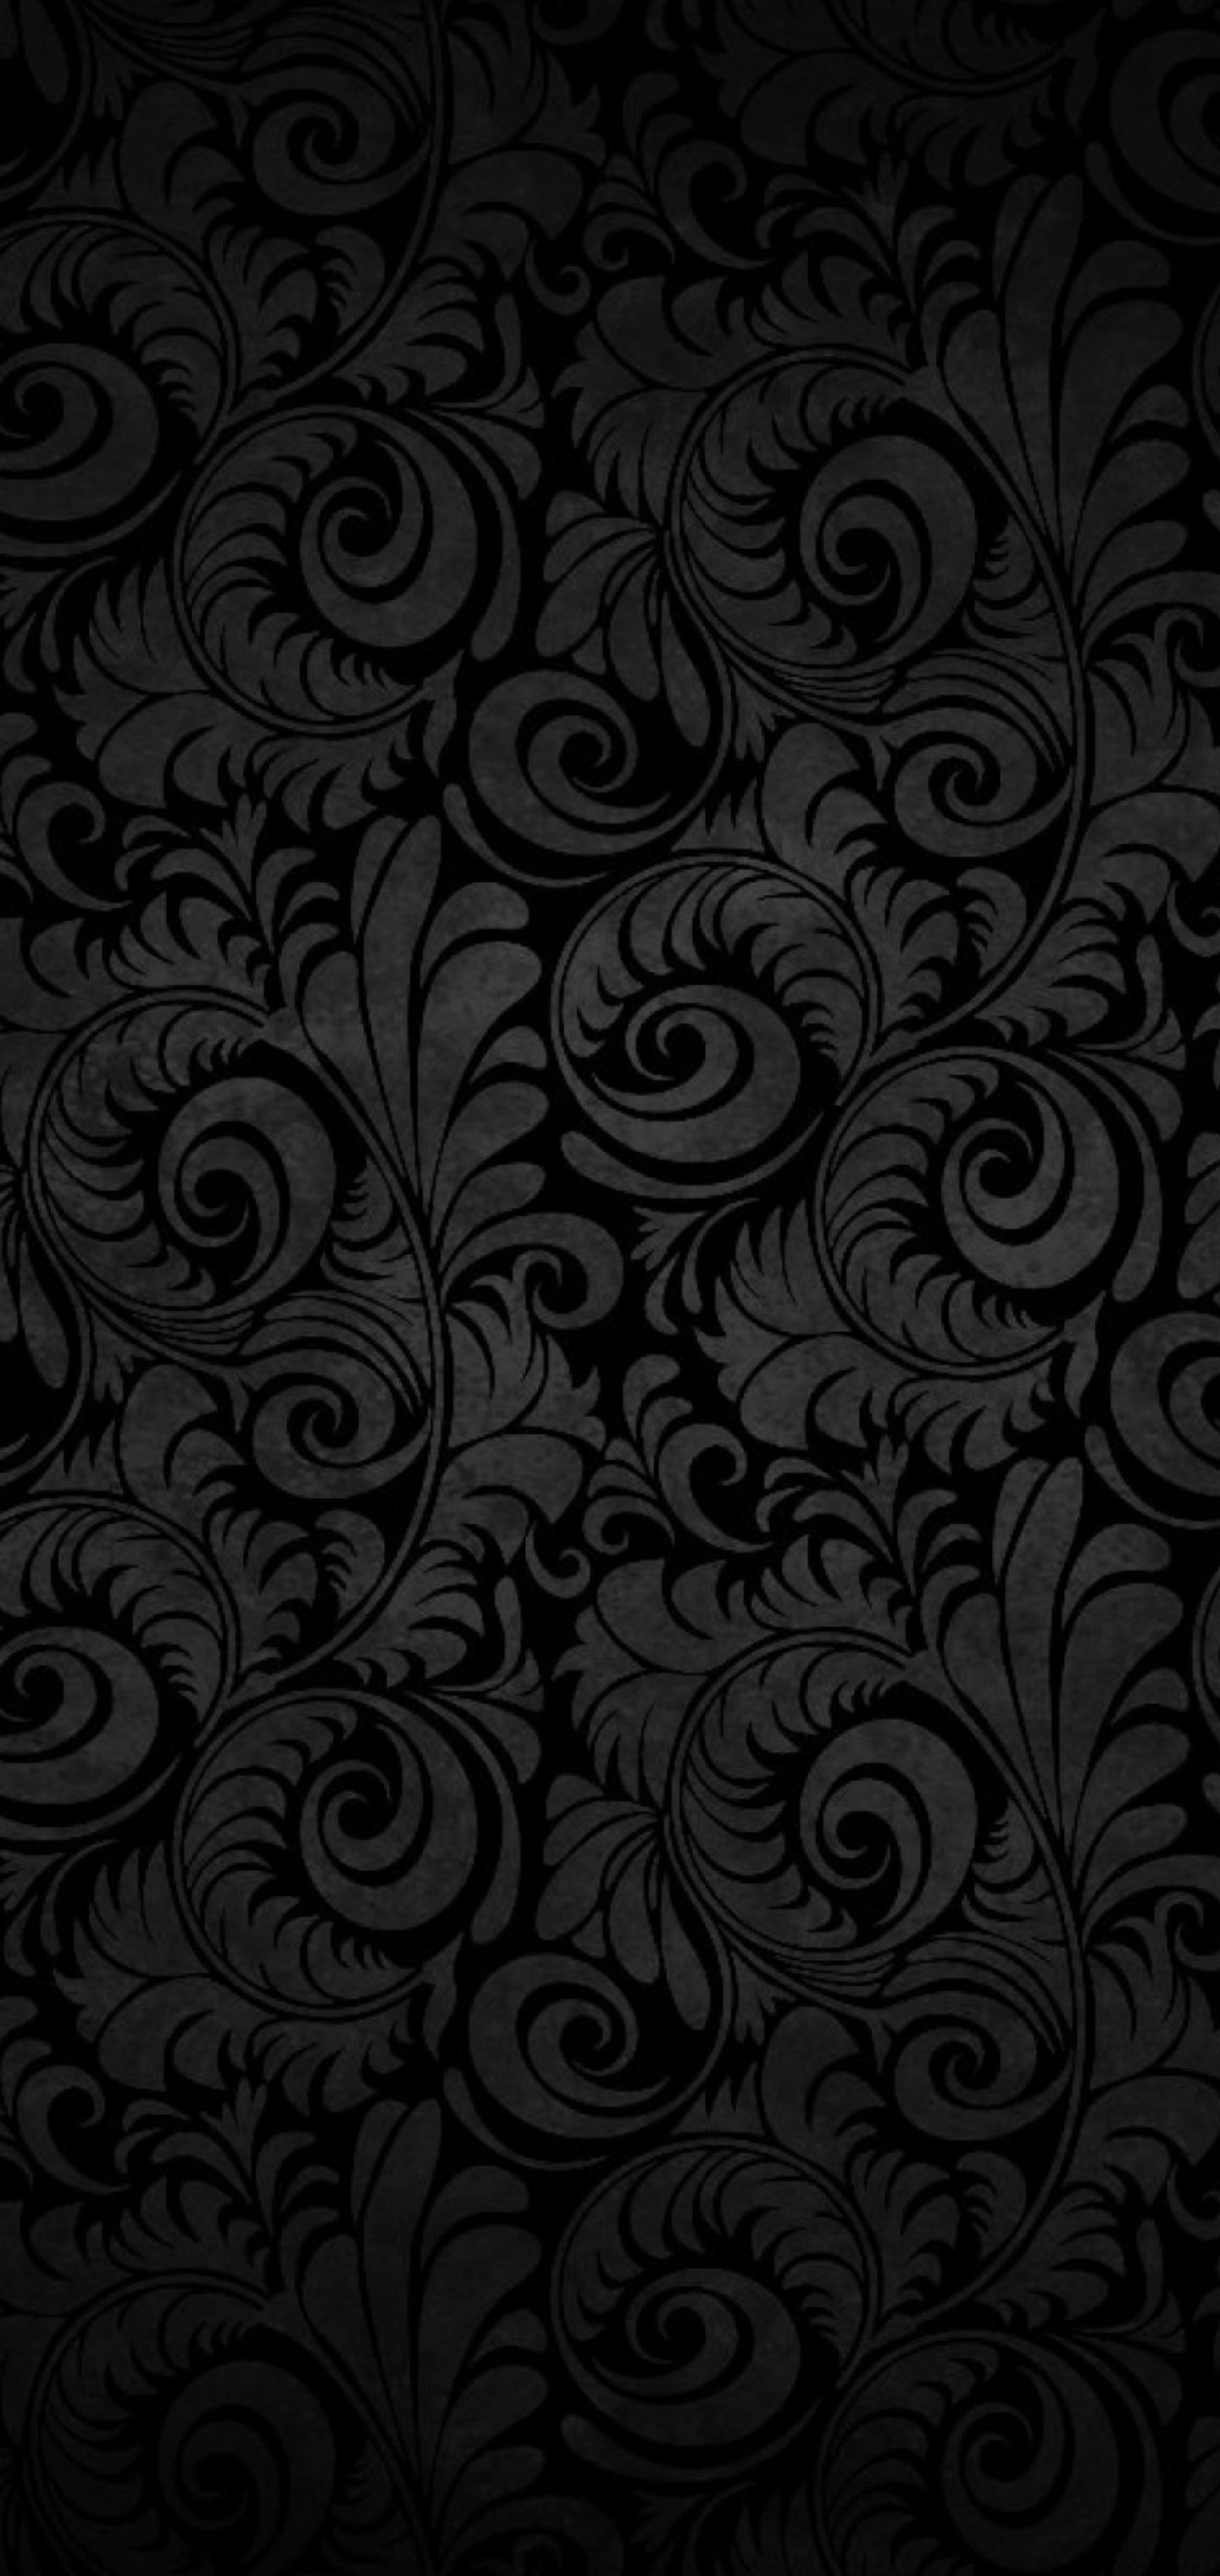 Samsung S20 Ultra Wallpaper For Punch Hole Samsung Galaxy Wallpaper Wallpaper Samsung Wallpaper Android